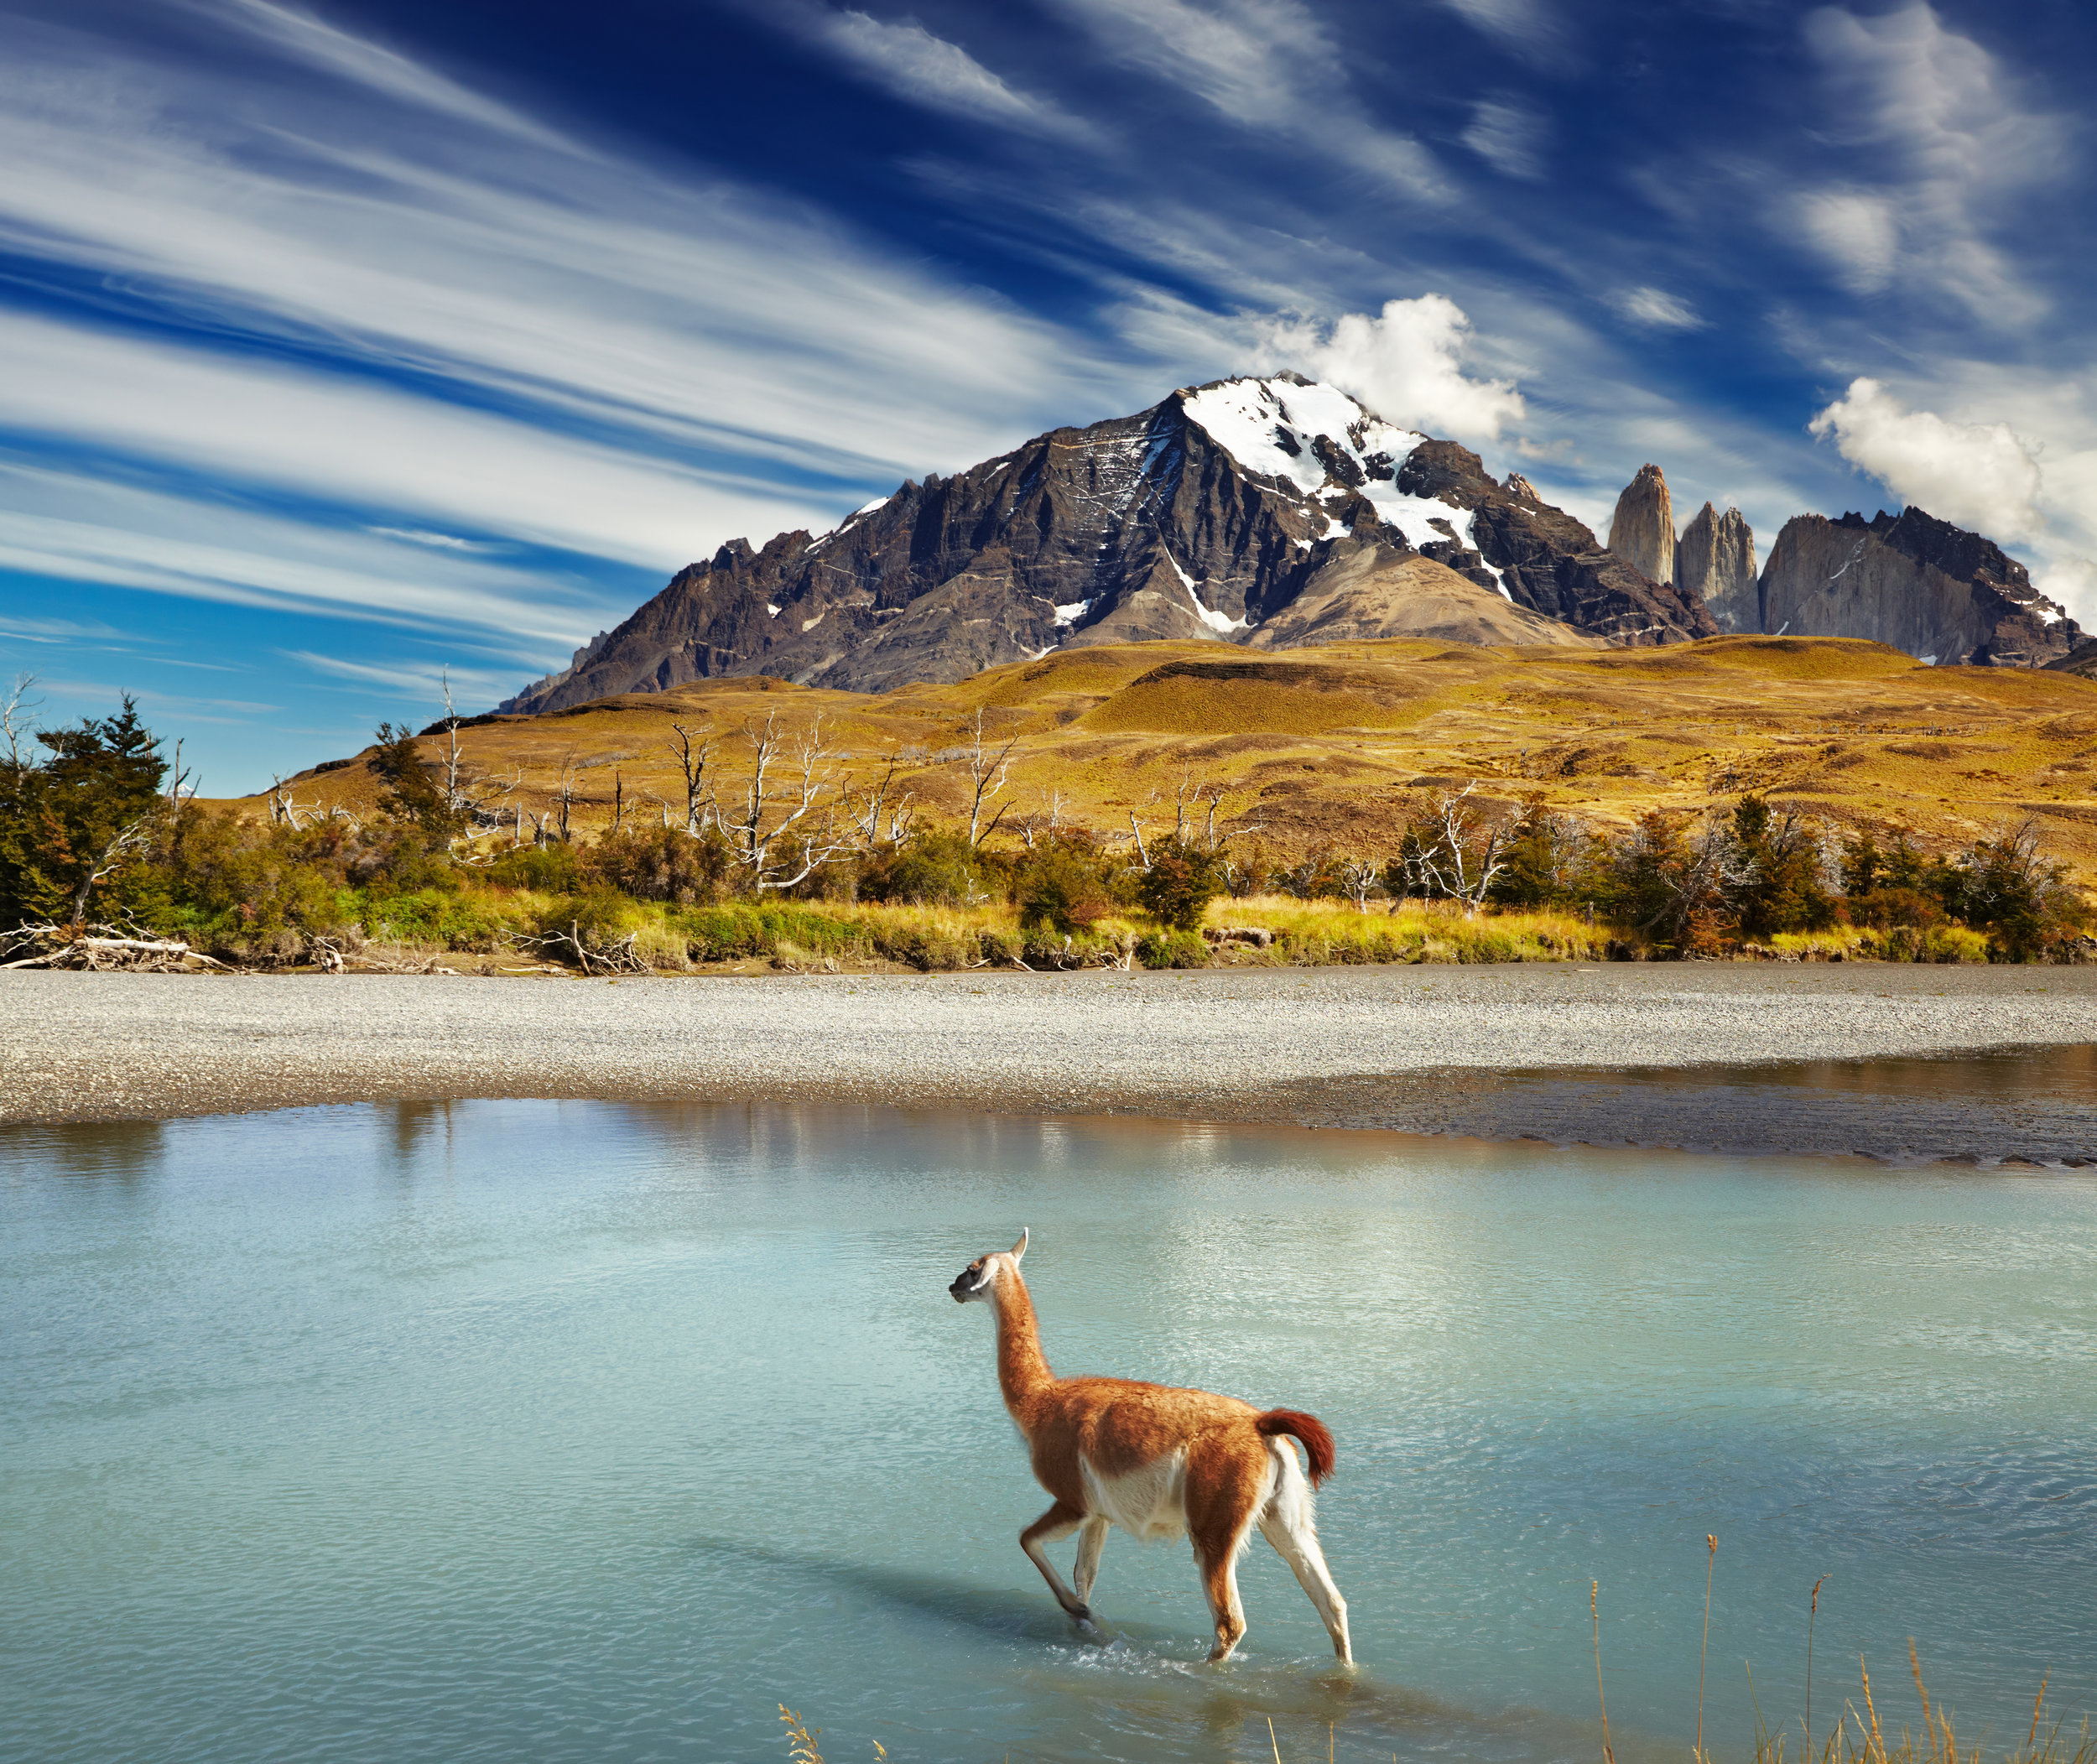 bigstock-Guanaco-crossing-the-river-in--38565955-1.jpg